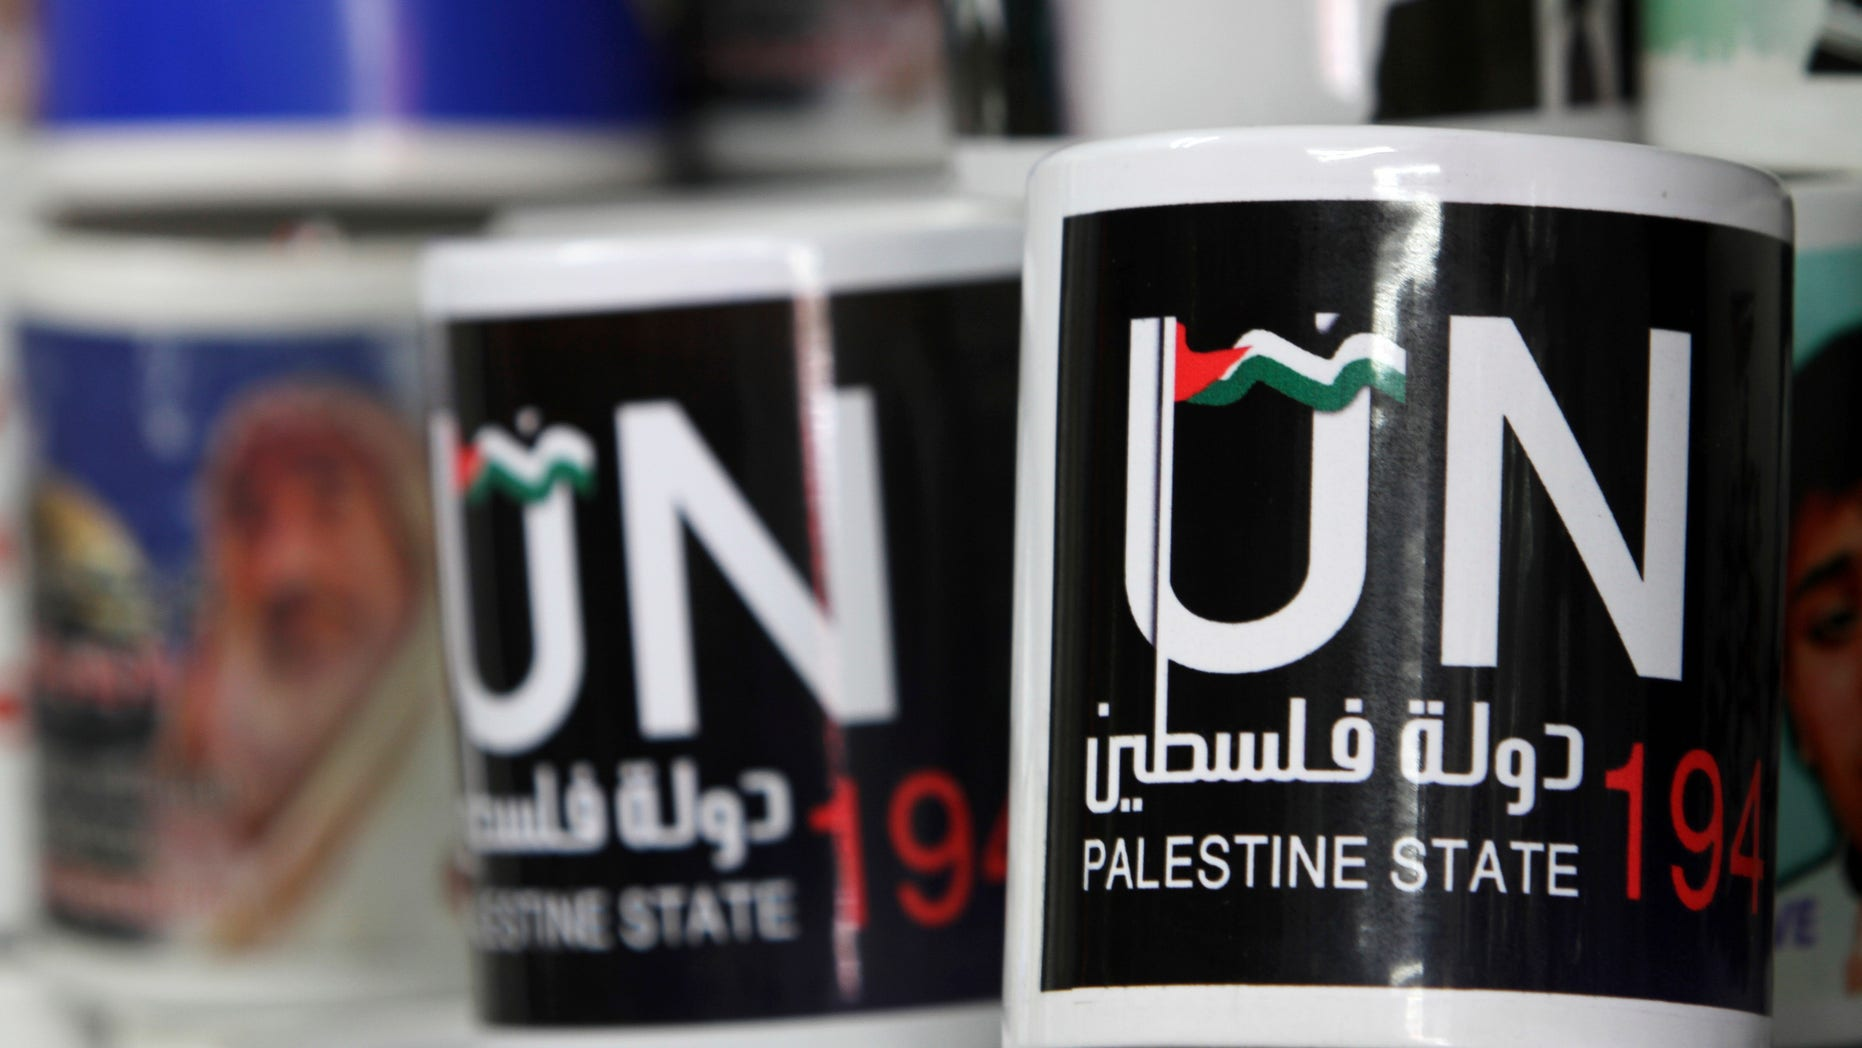 Cups designed as part of the campaign promoting the Palestinians' bid for statehood are displayed in a souvenirs shop in Gaza City, Tuesday, Sept. 13, 2011.